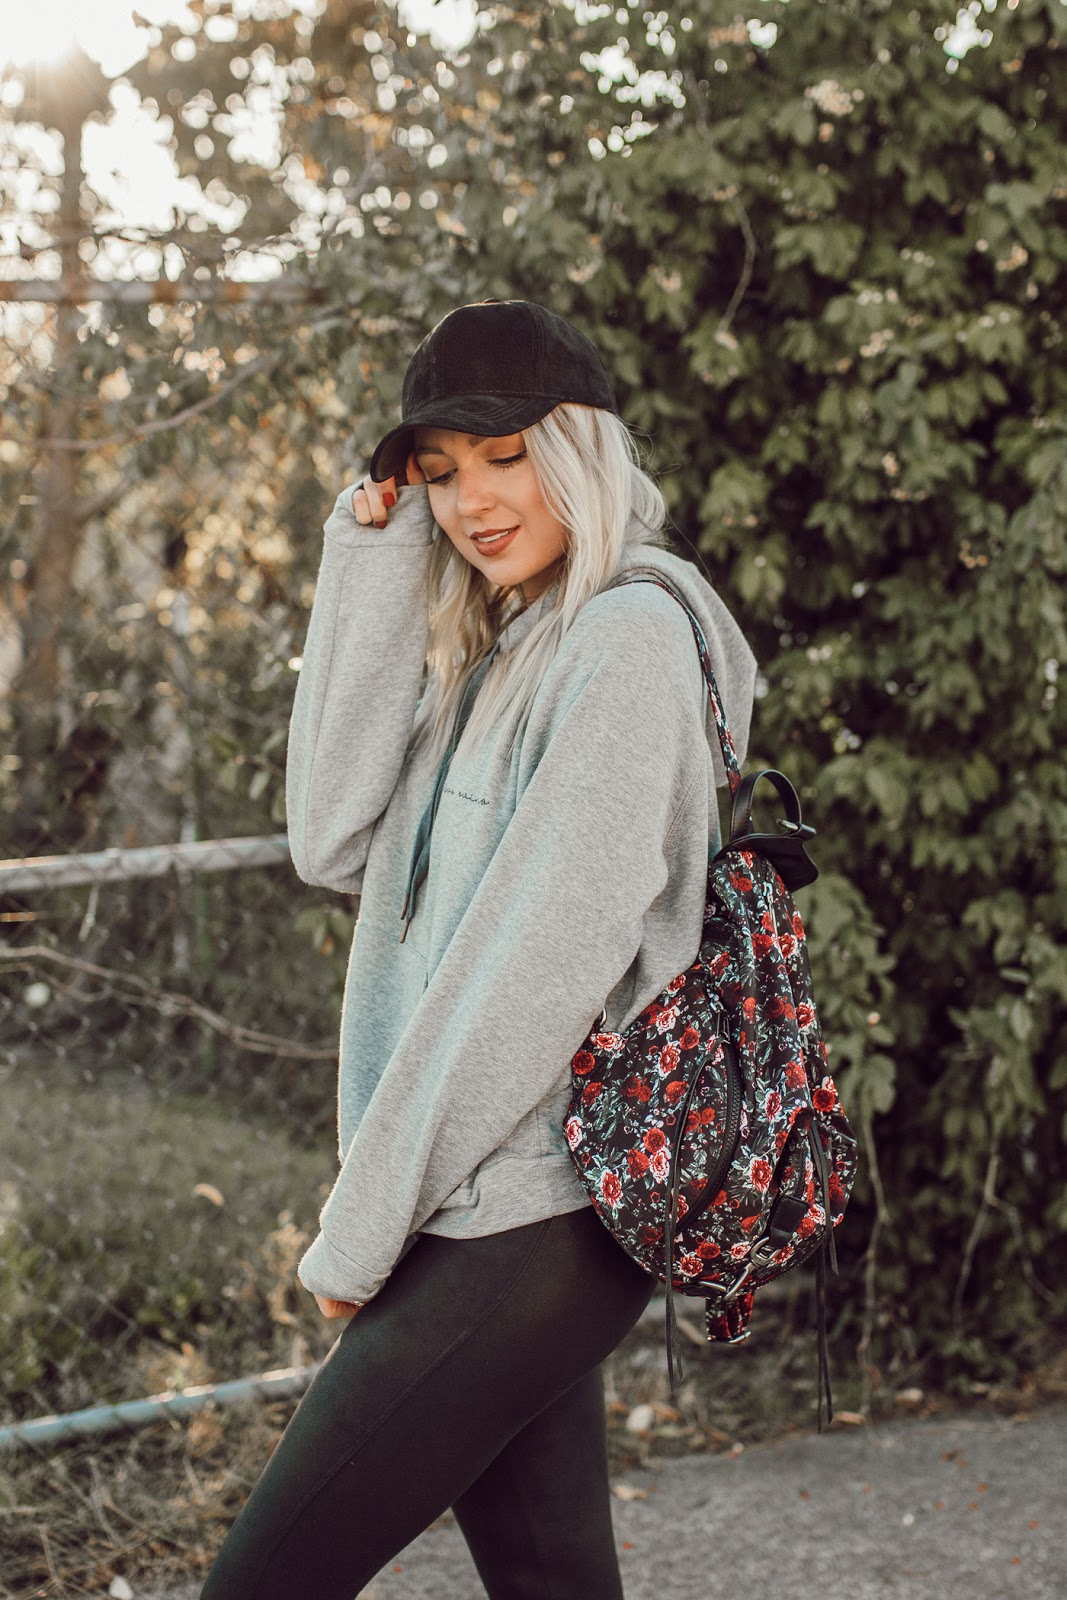 floral rebecca minkoff backpack / cute athleisure outfit